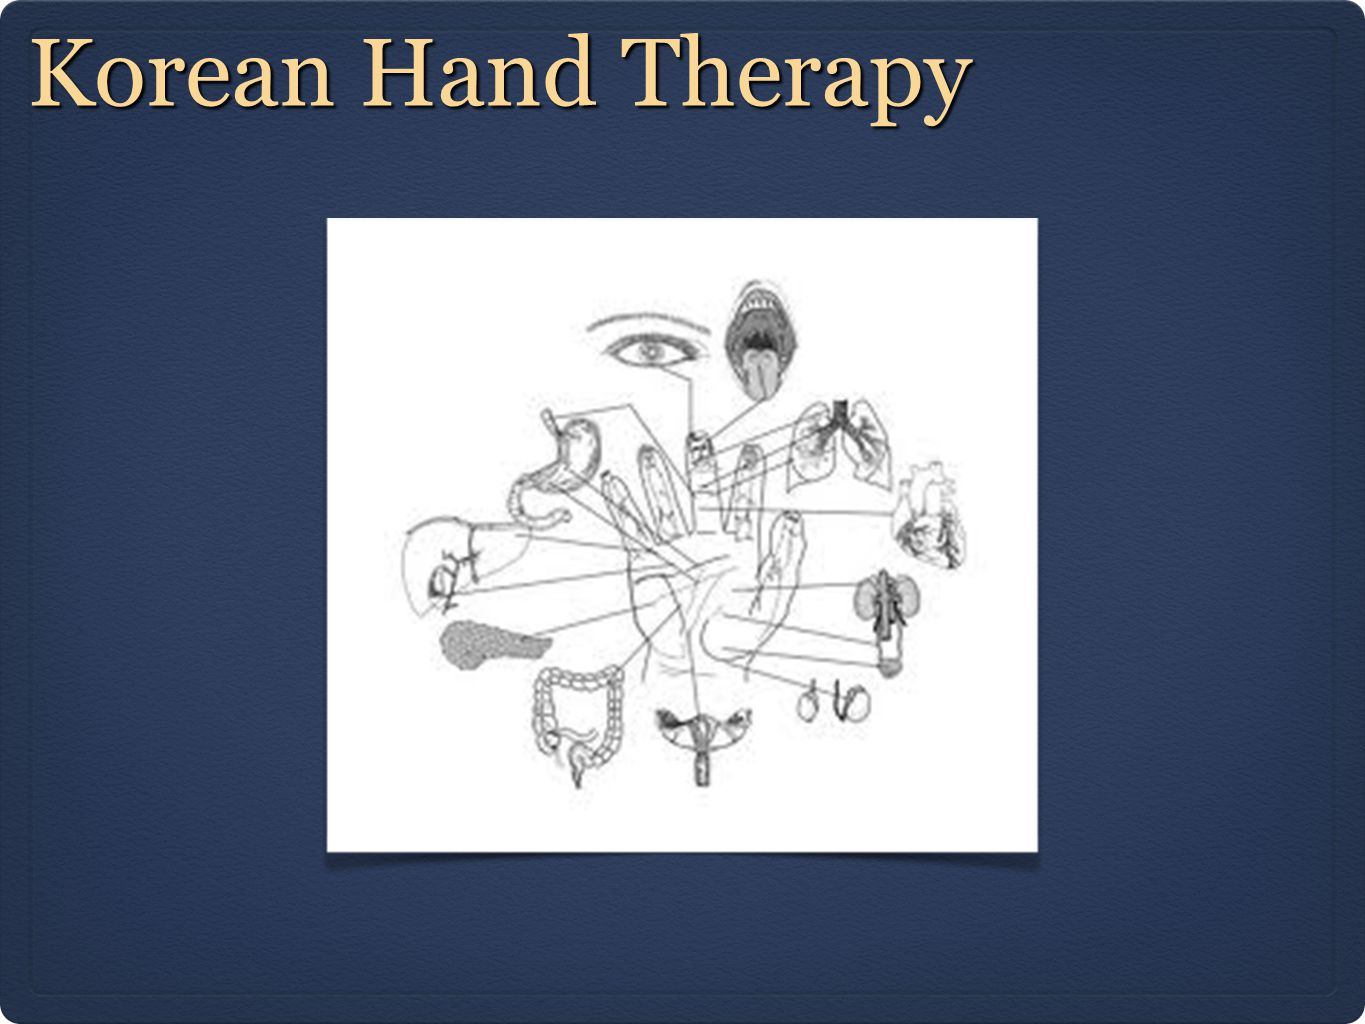 Korean Hand Therapy